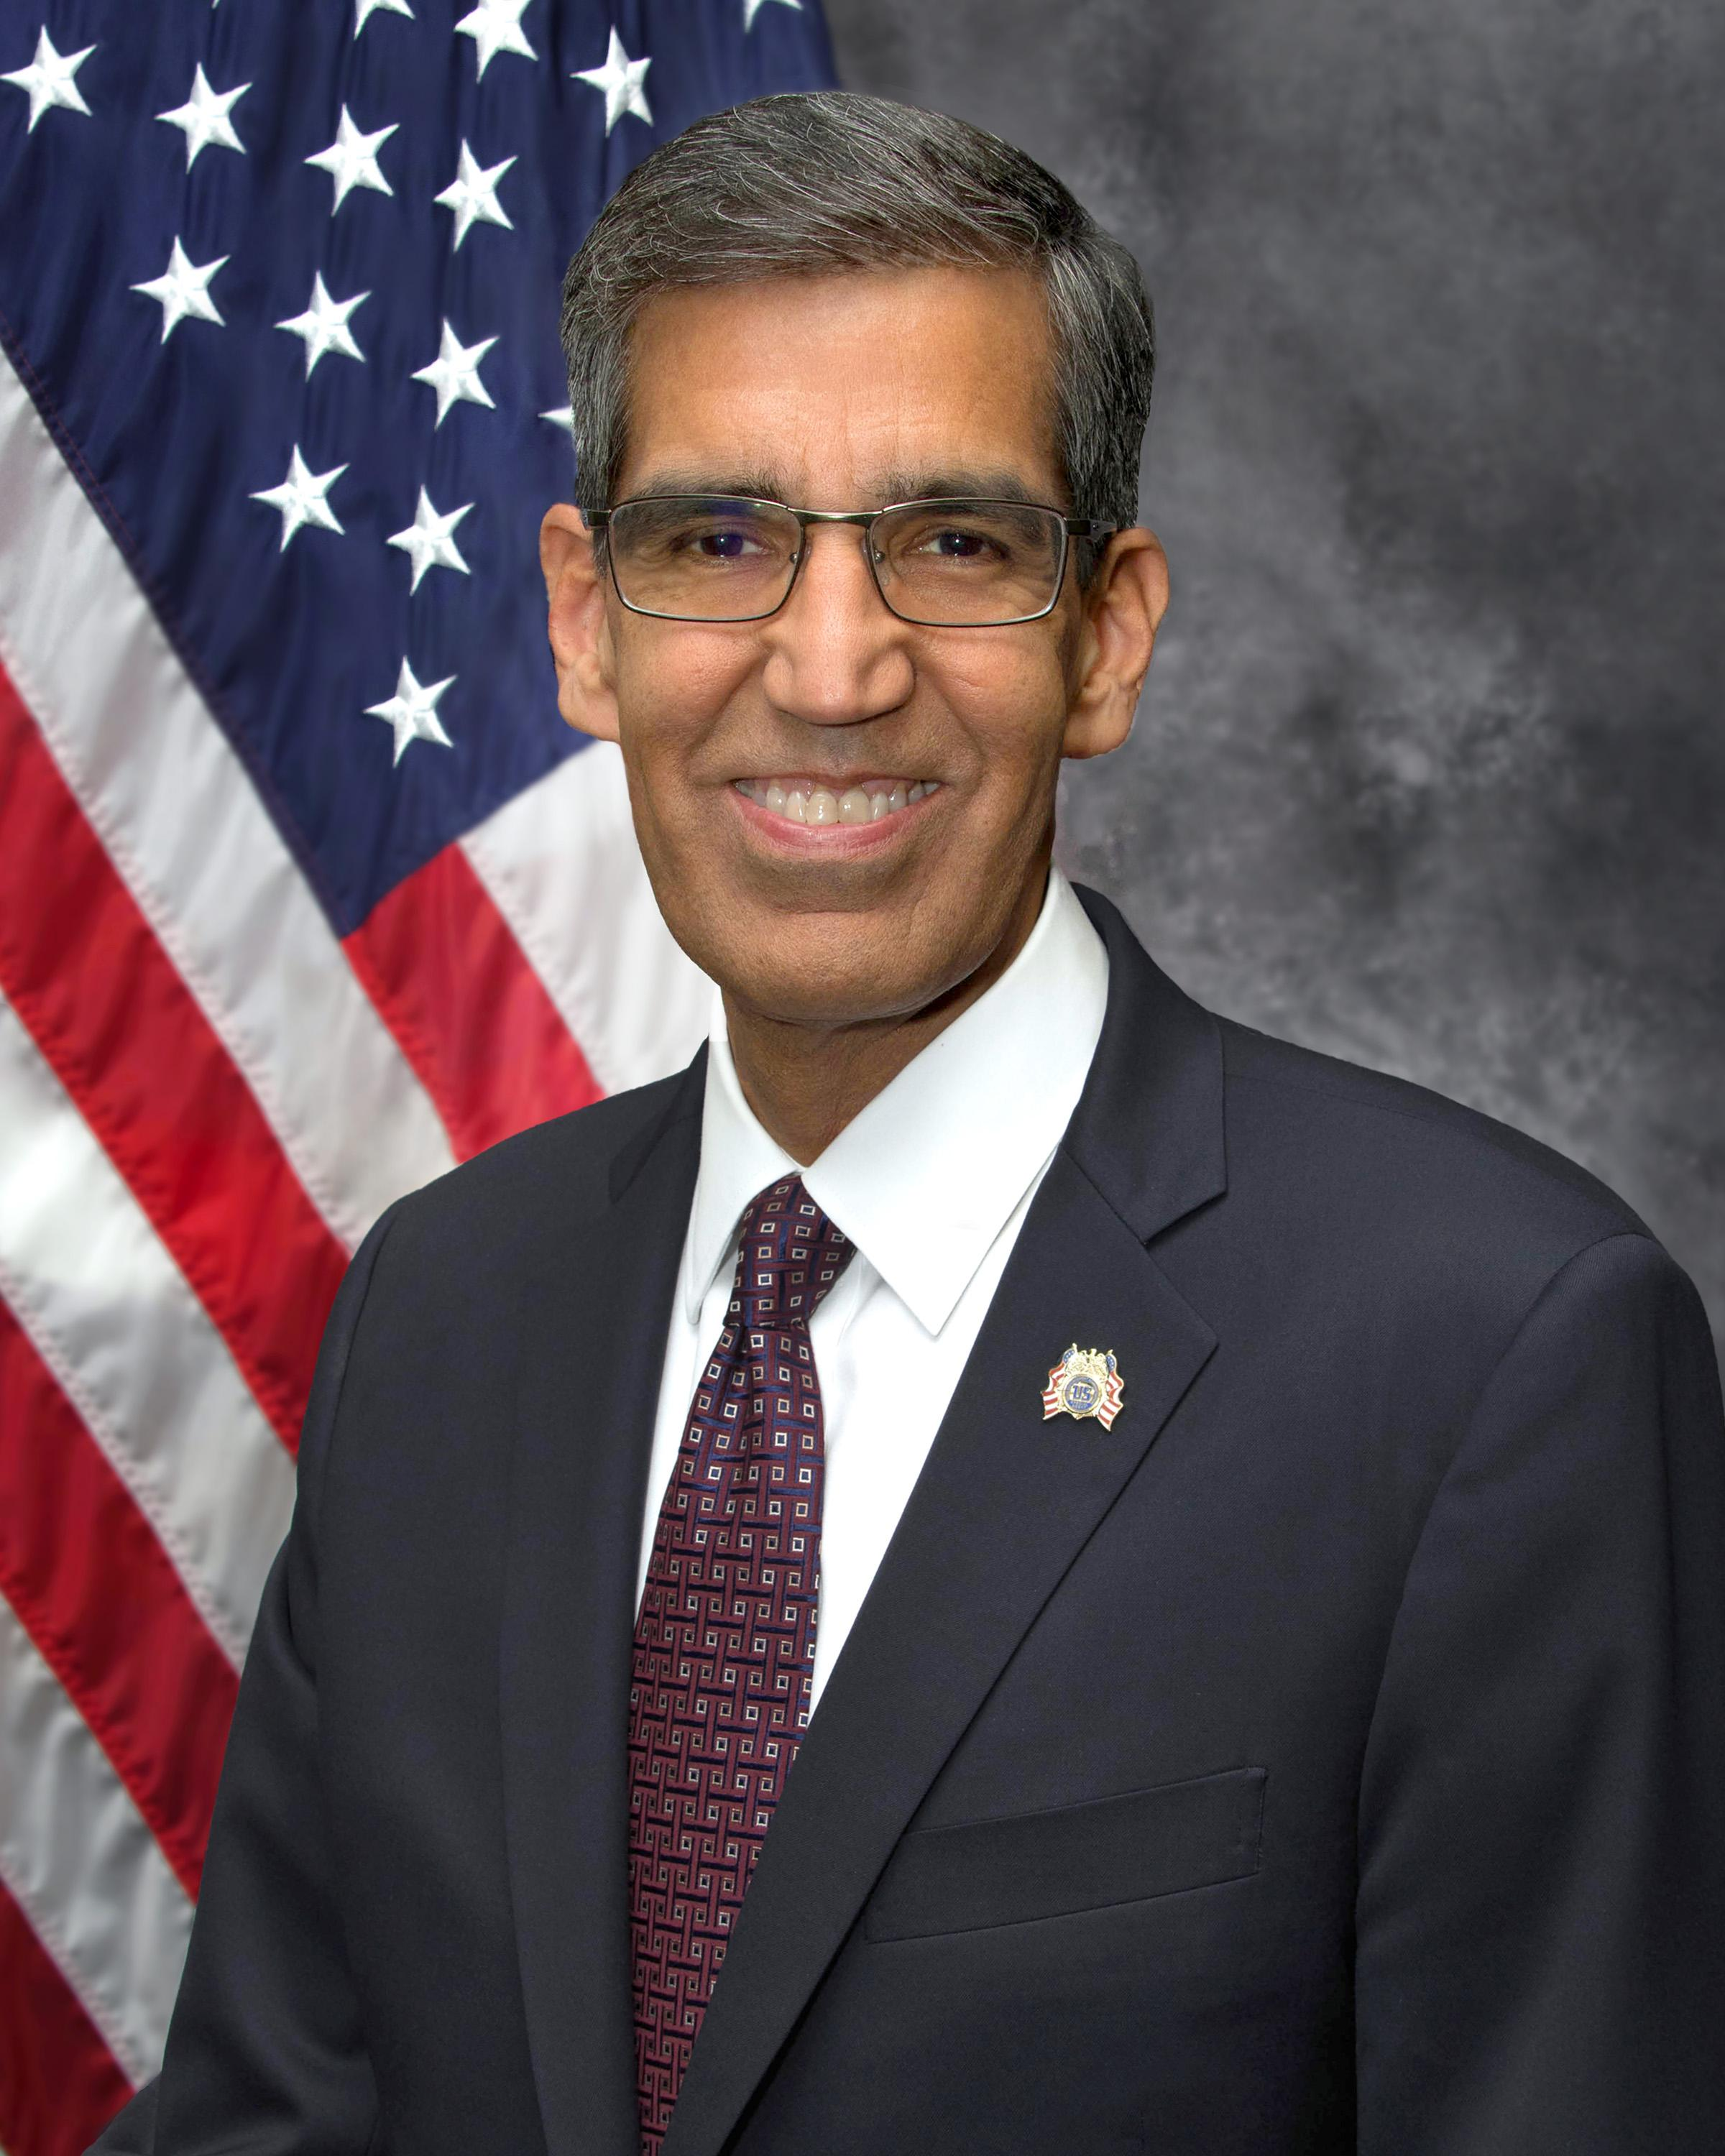 Uttam Dhillon, Acting Administrator, Drug Enforcement Administration